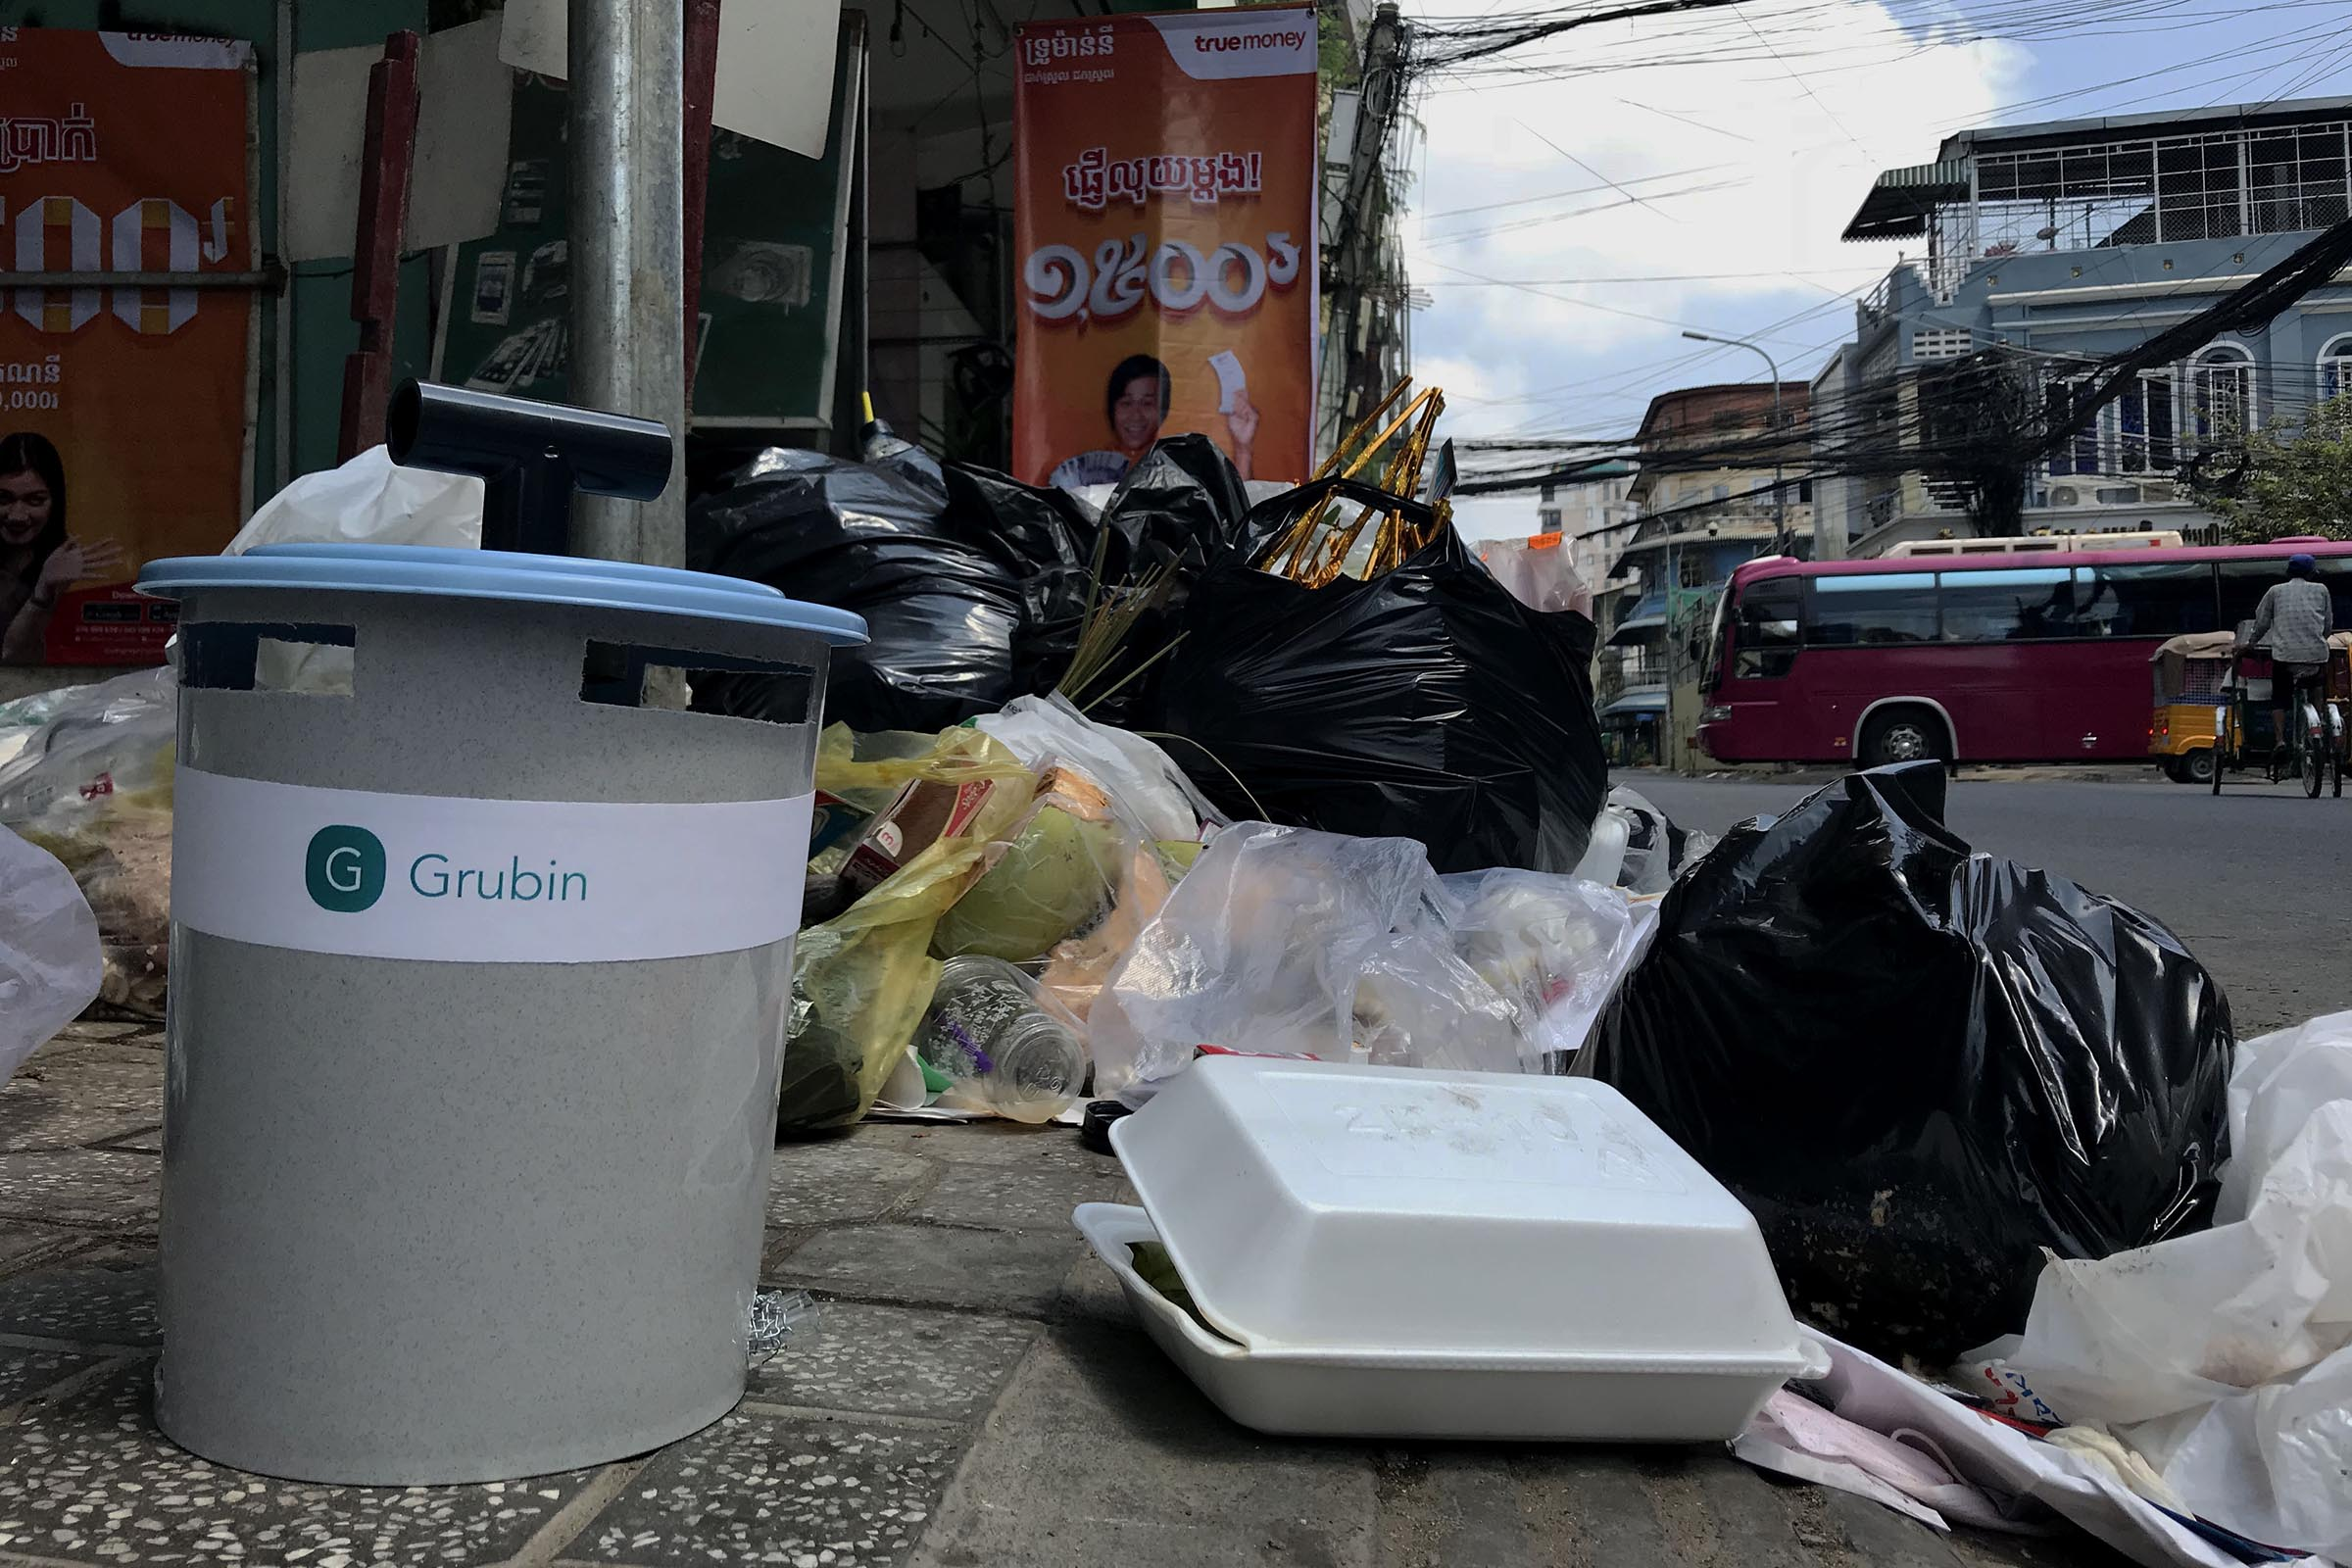 A Grubin in front of a trash pile along a street in Phnom Penh, Cambodia